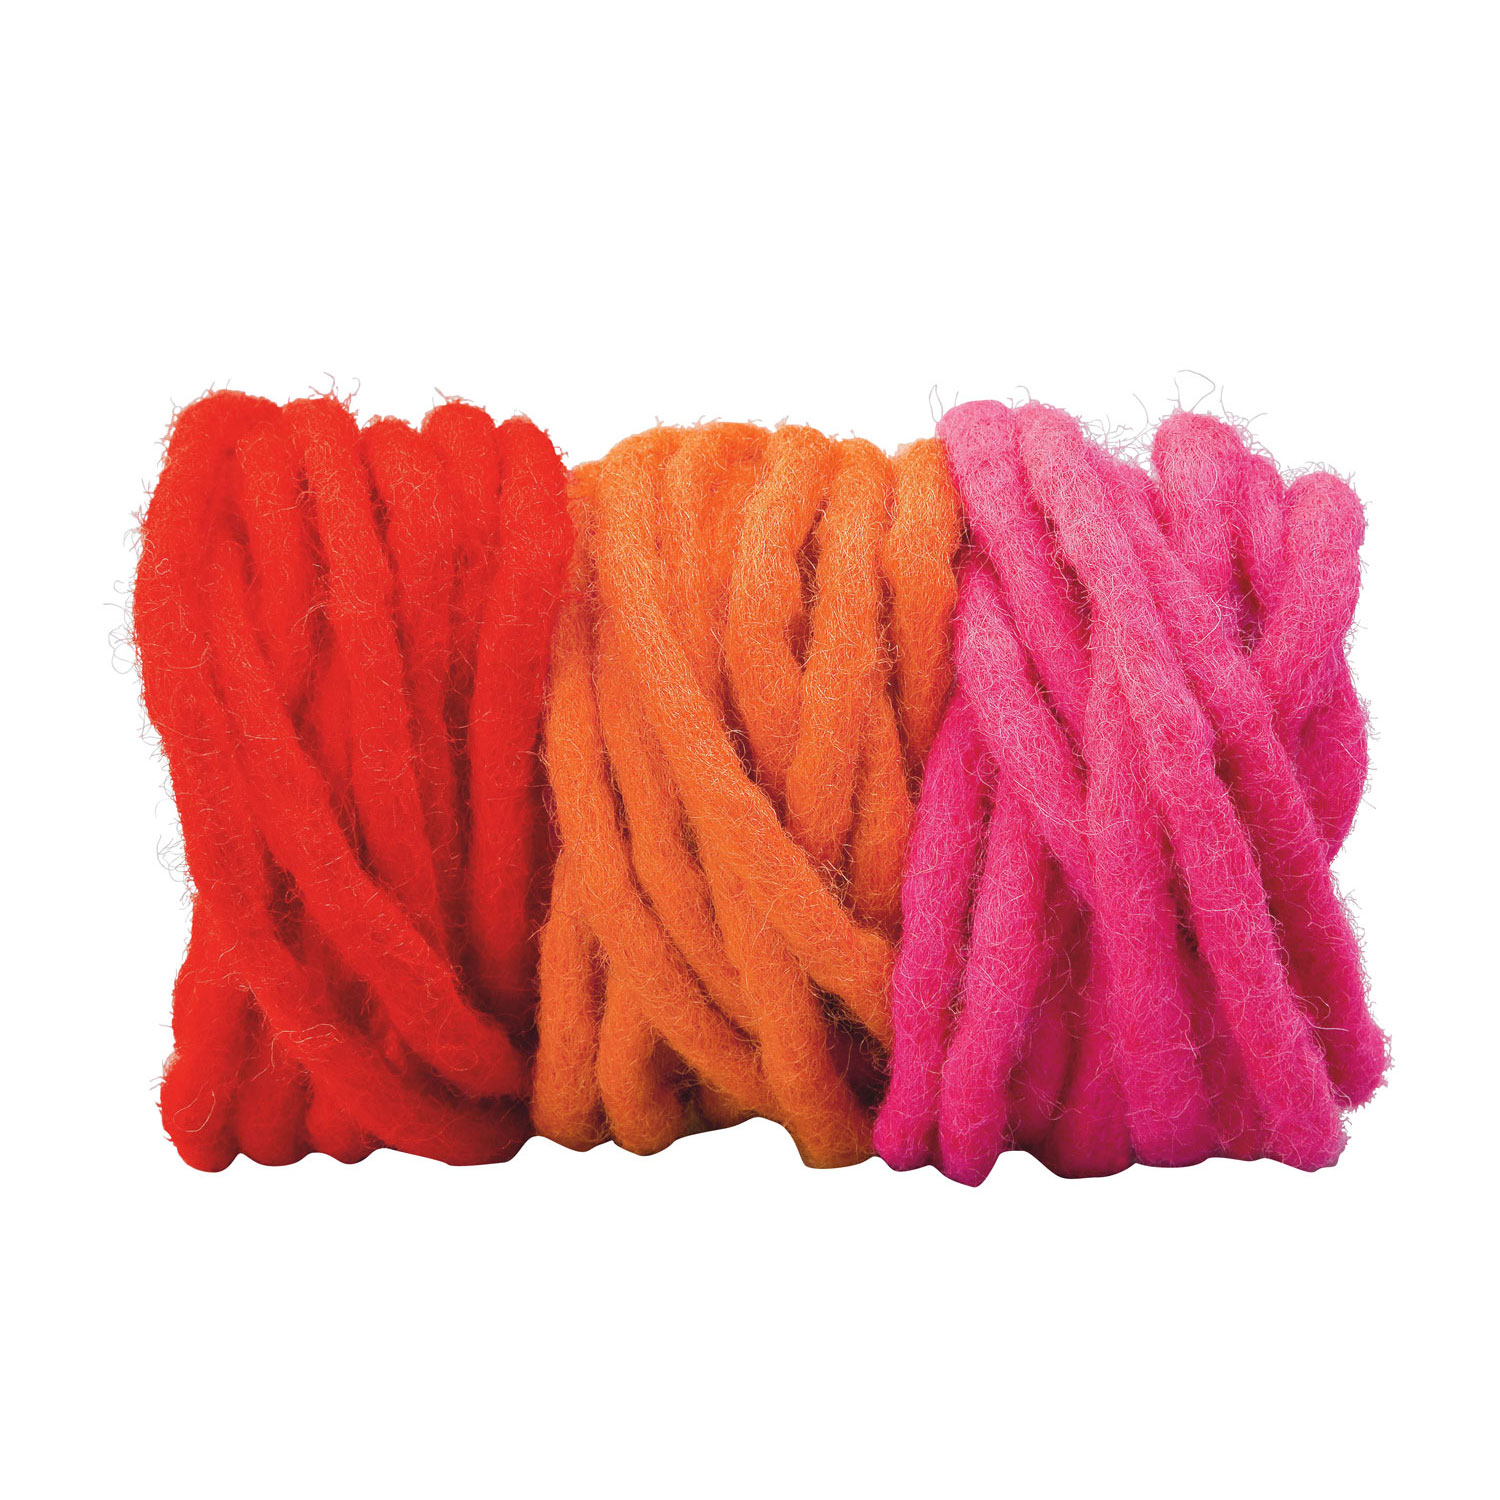 Set of 3 Thin Woolfelt Cords in Red, Orange and Pink